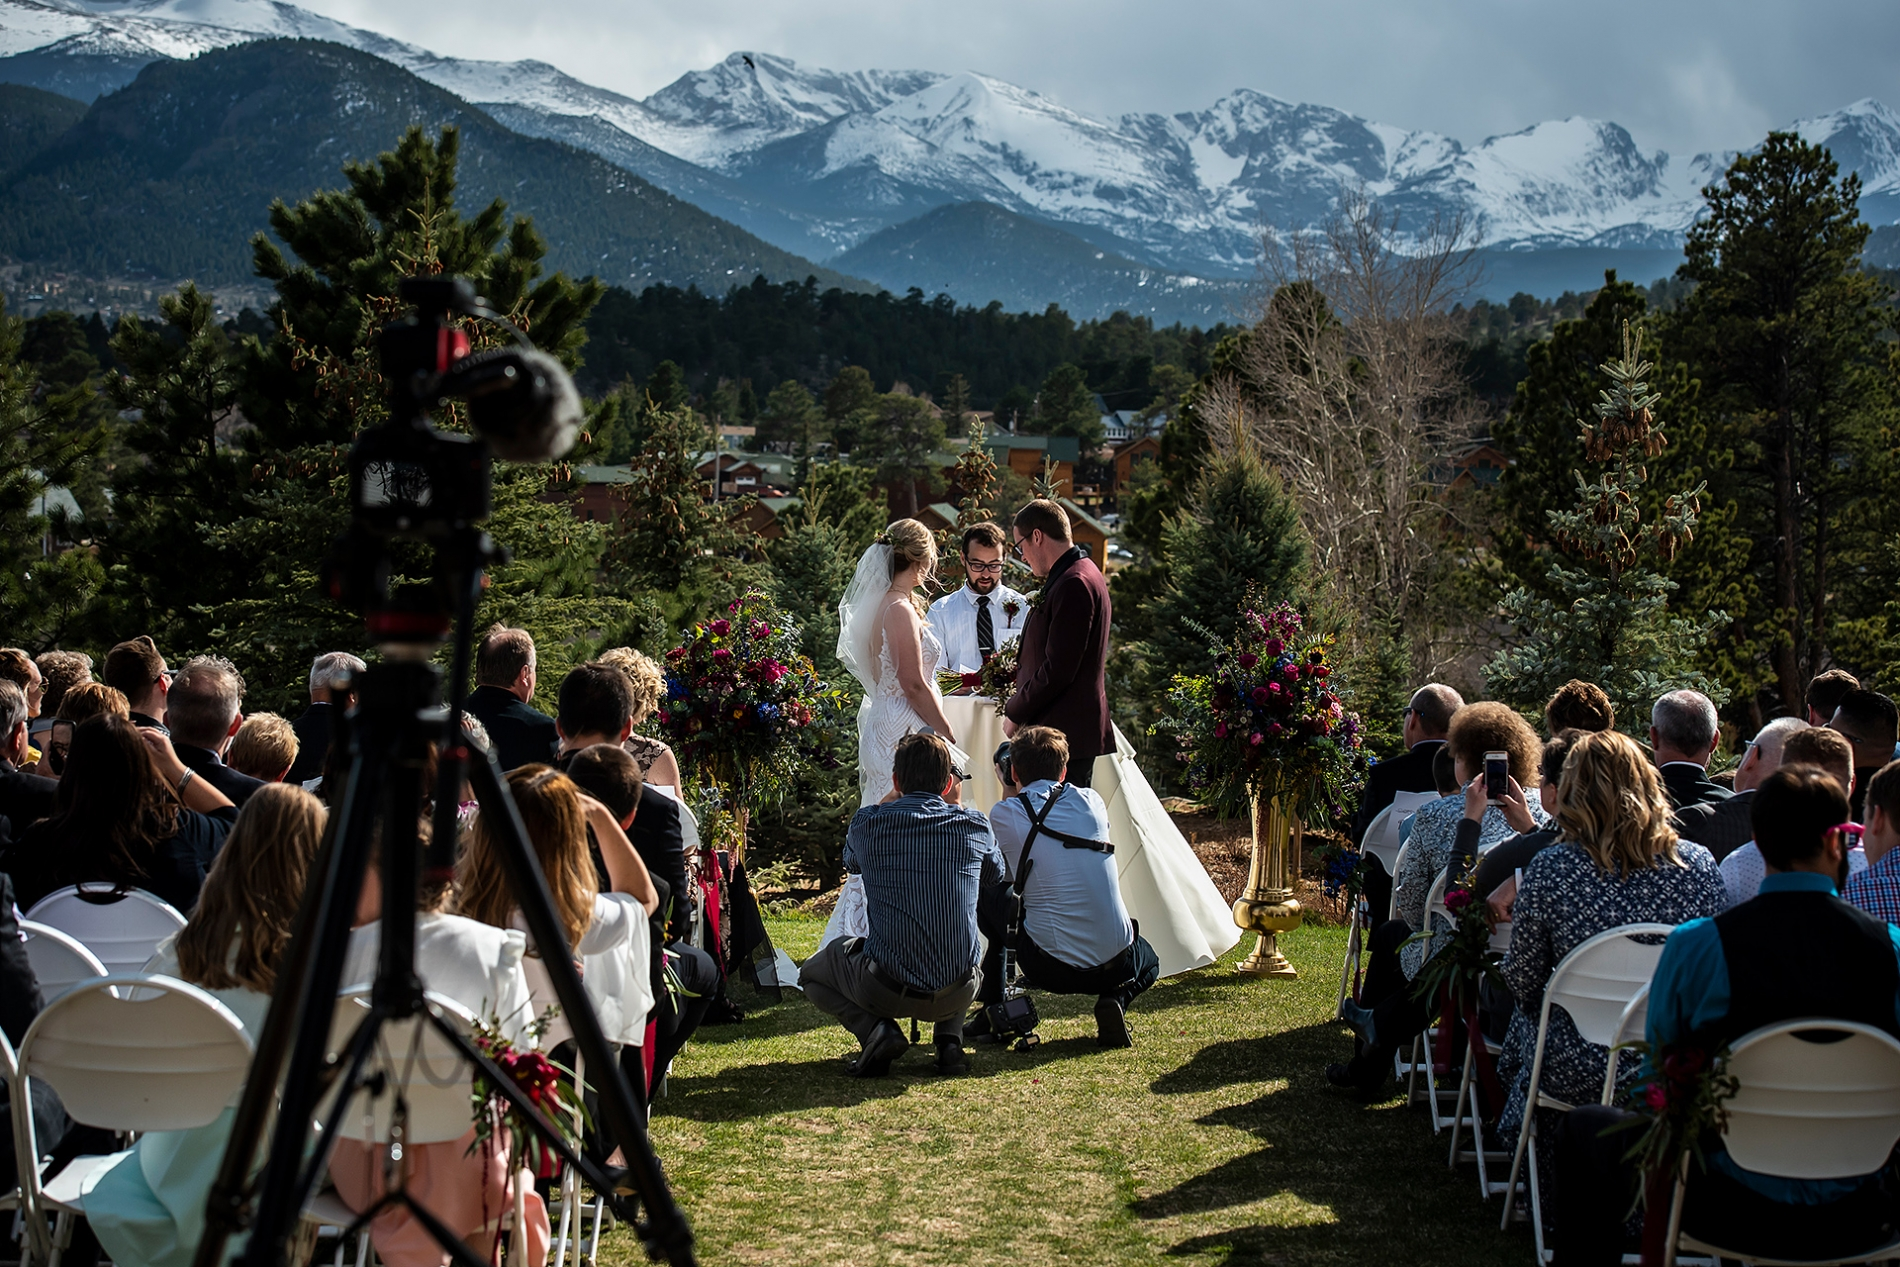 Stanley Hotel Wedding Venue | Estes Park Wedding Photographer | J. La Plante Photo